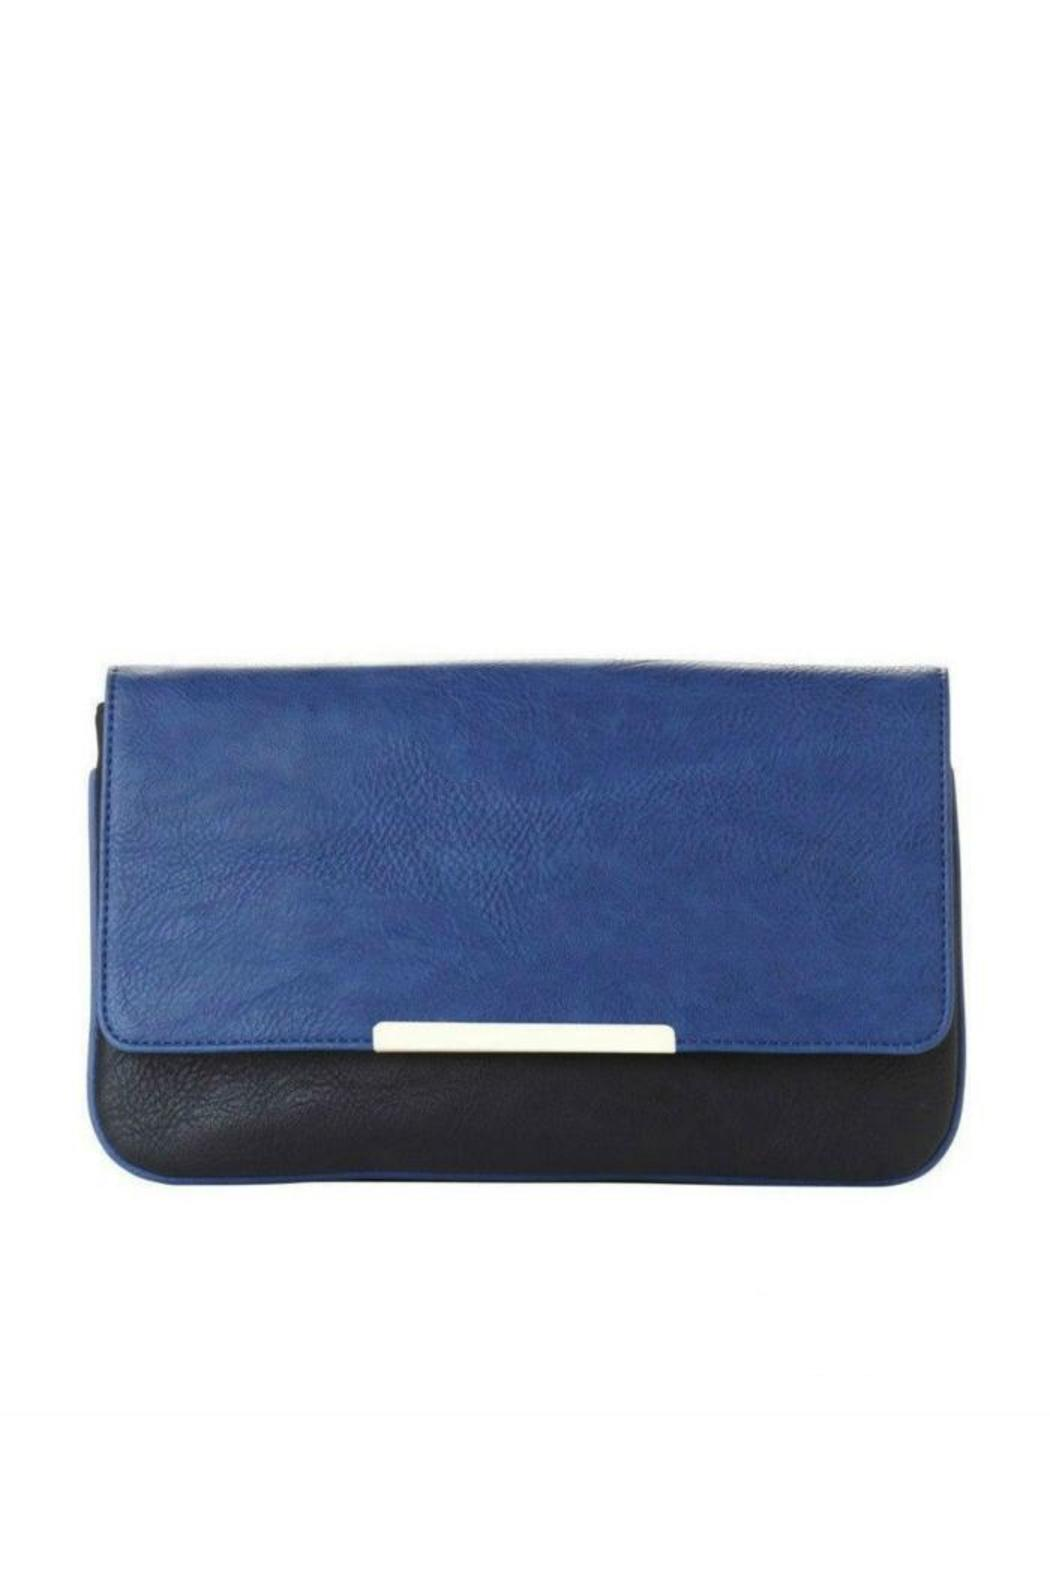 Jeane & Jax Color Blocked Clutch - Front Cropped Image